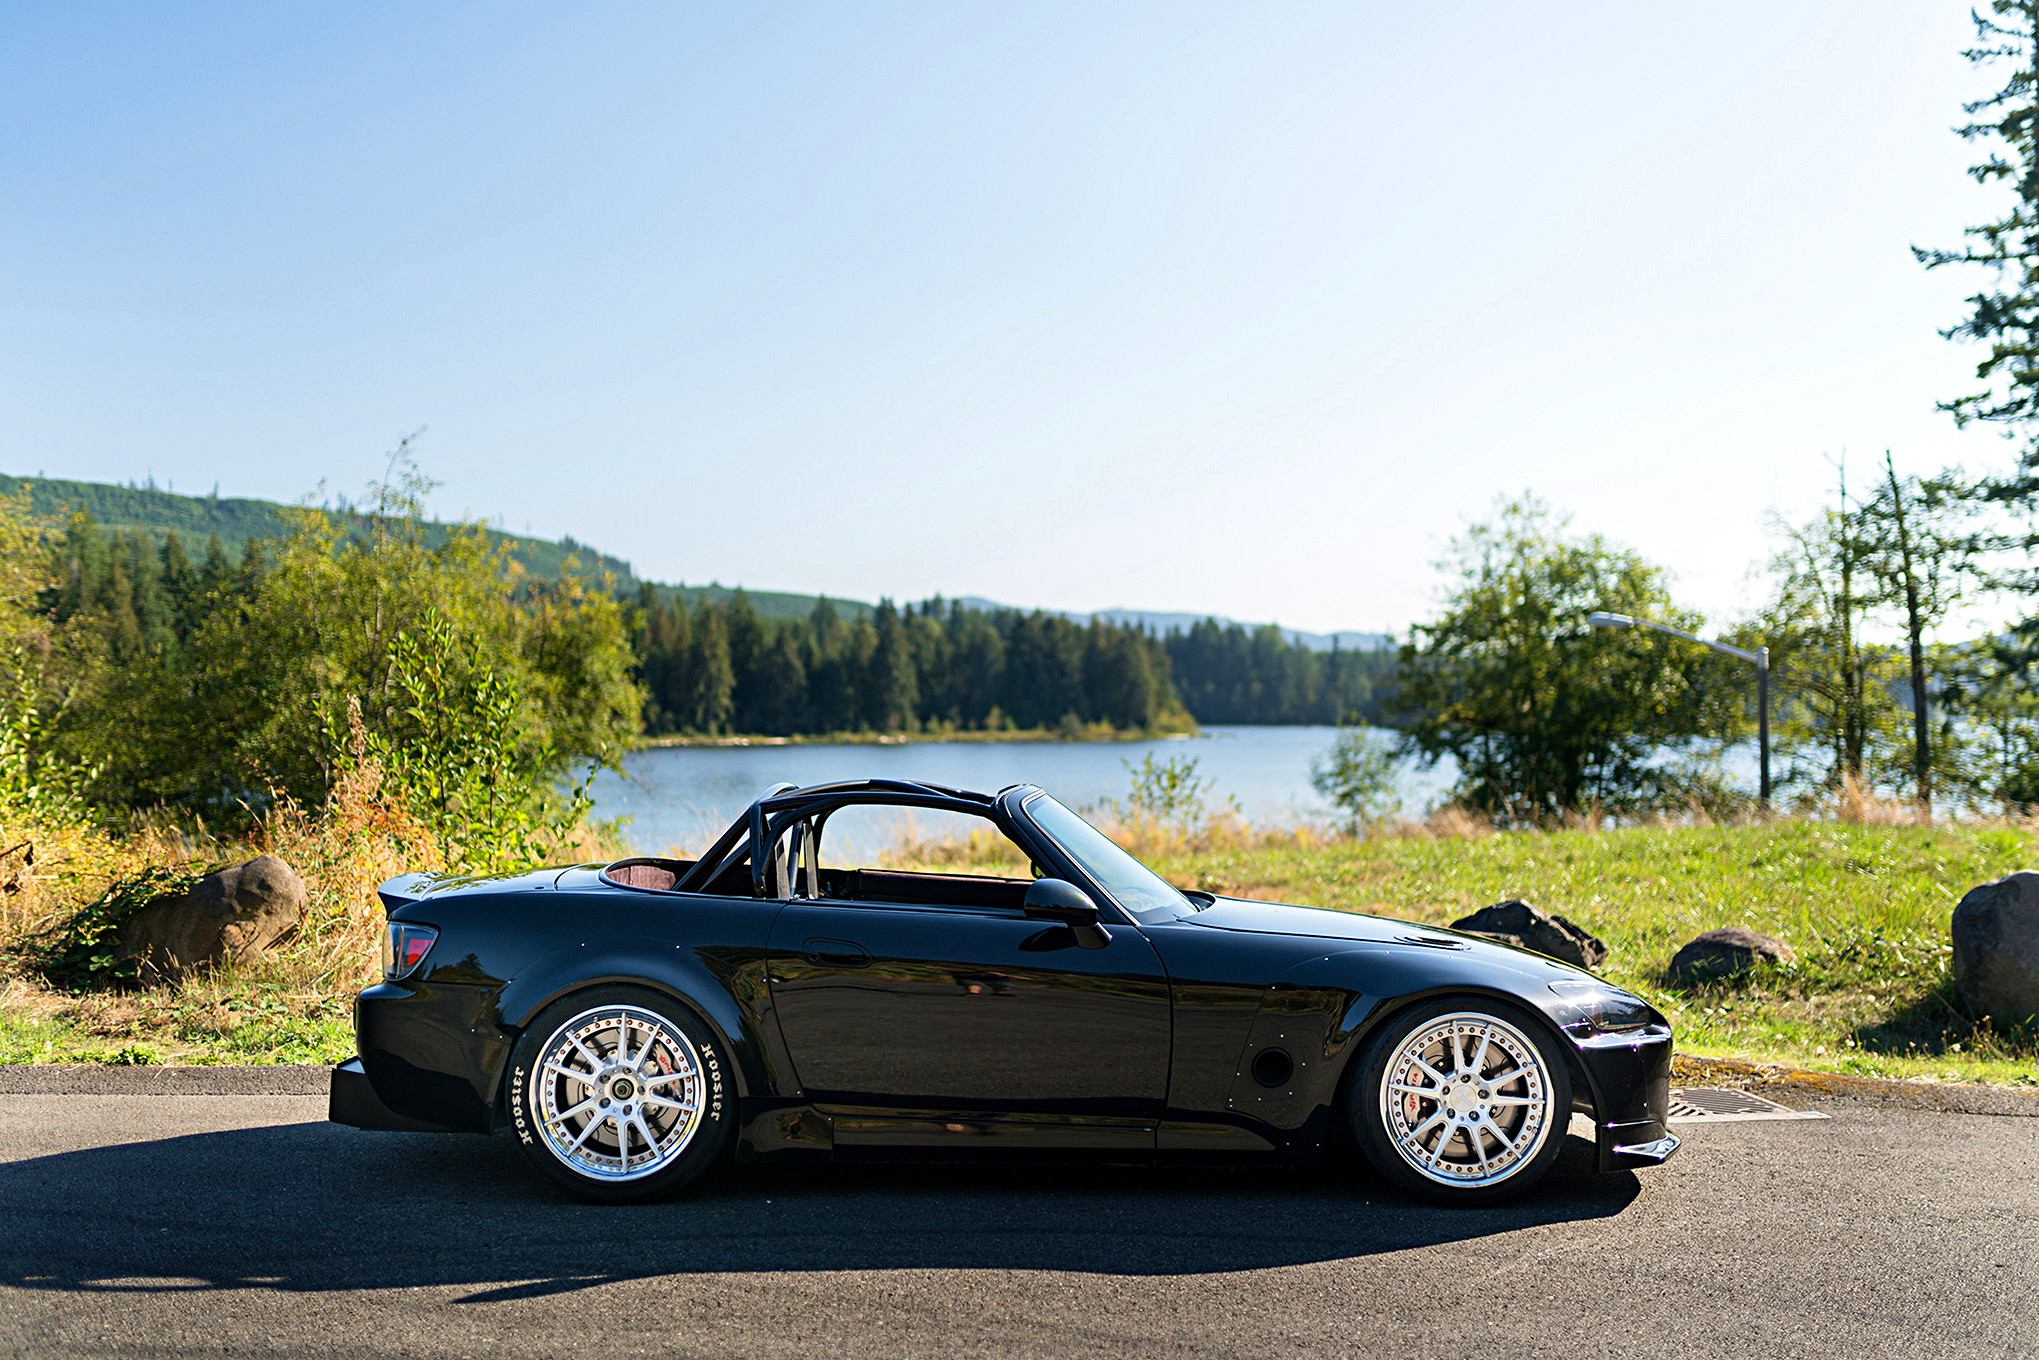 2000 Honda S2000 - 2J Don't Play Photo & Image Gallery